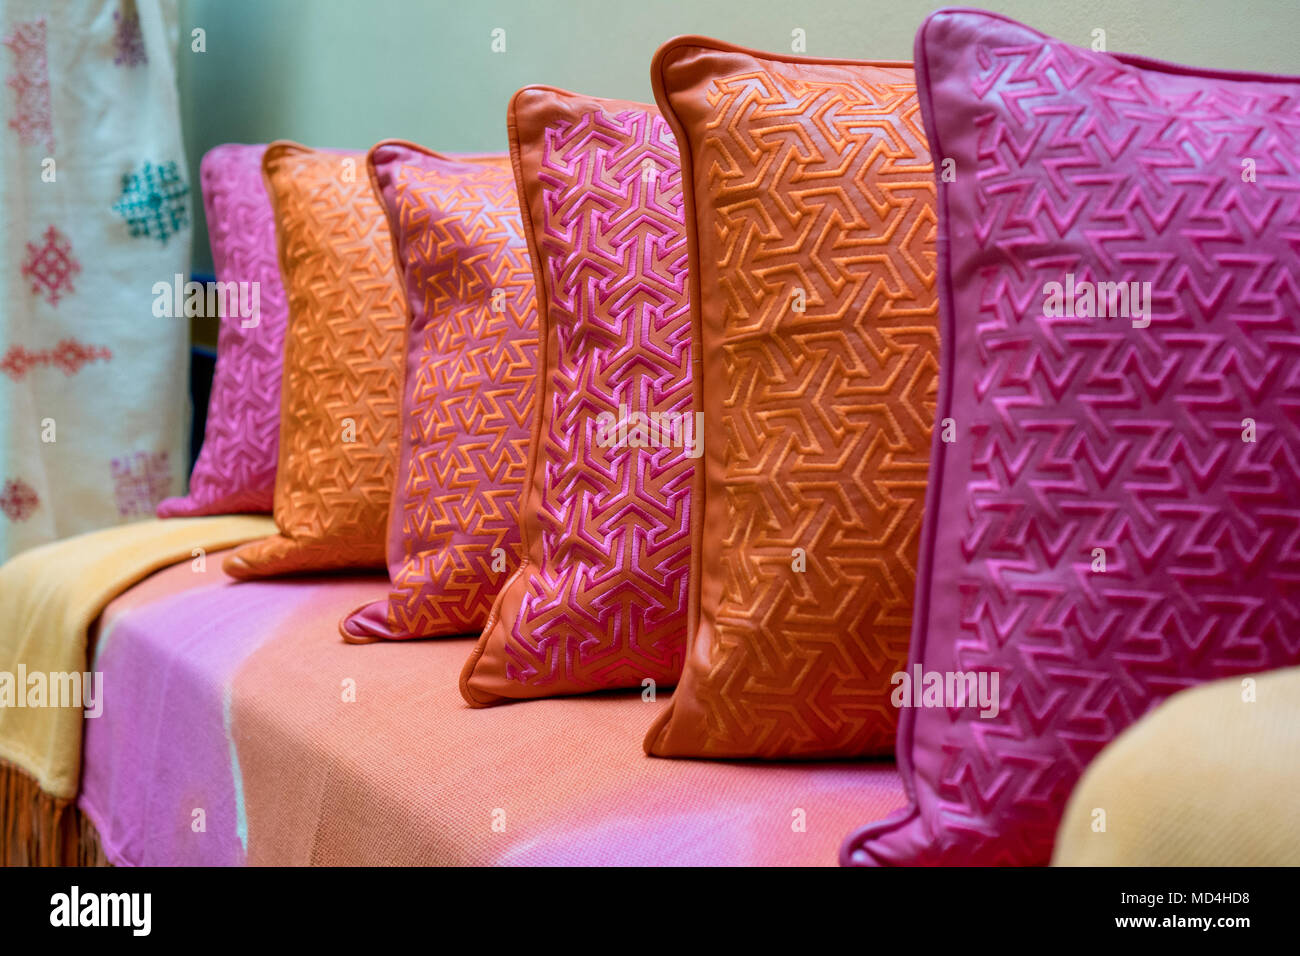 Red Orange And Magenta Decorative Pillows Arranged On A Couch For Living Room Decoration Stock Photo Alamy